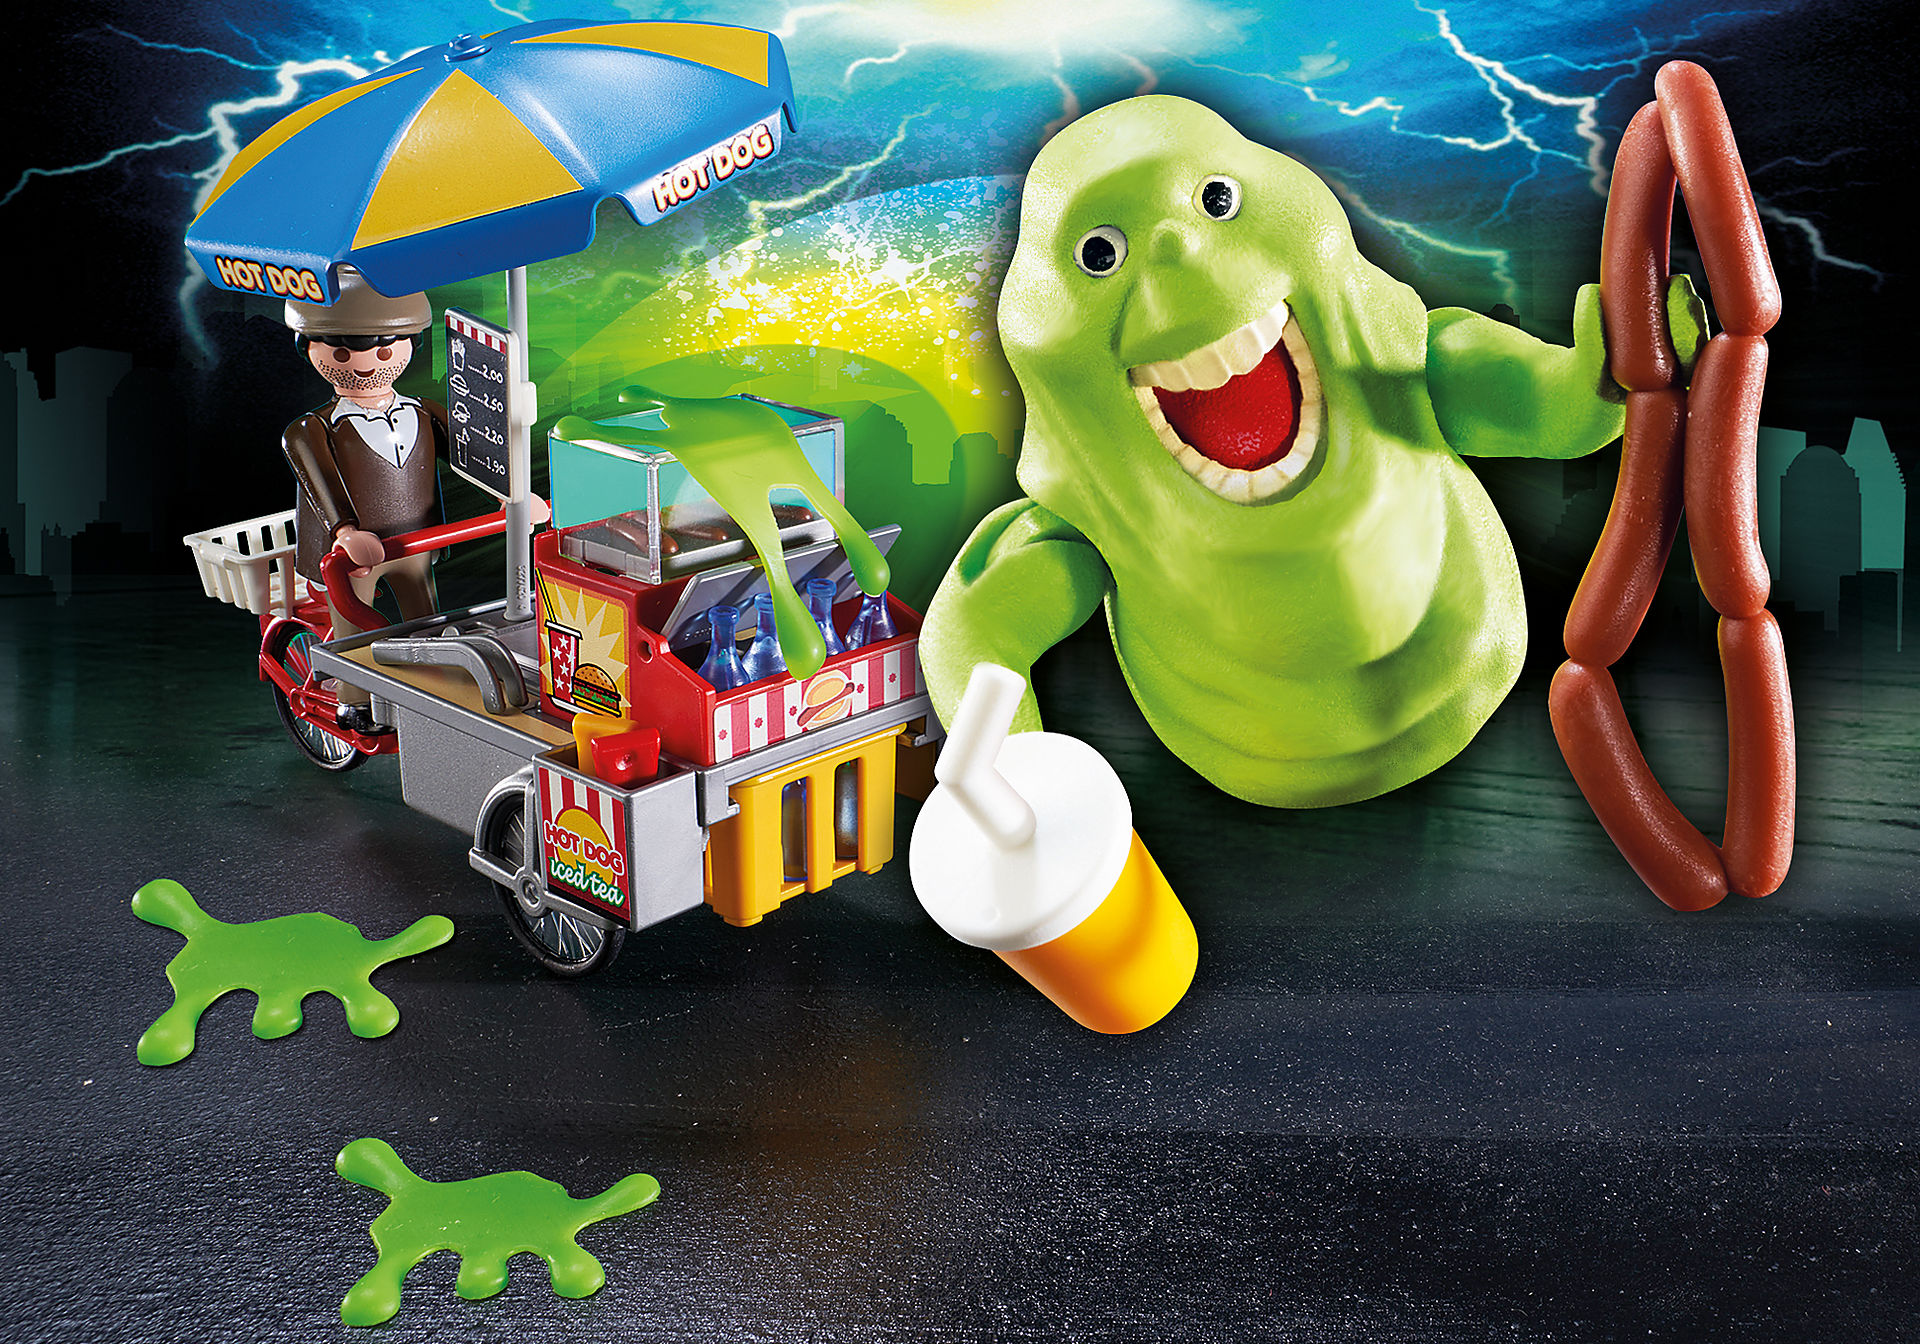 http://media.playmobil.com/i/playmobil/9222_product_extra1/Slimer mit Hot Dog Stand